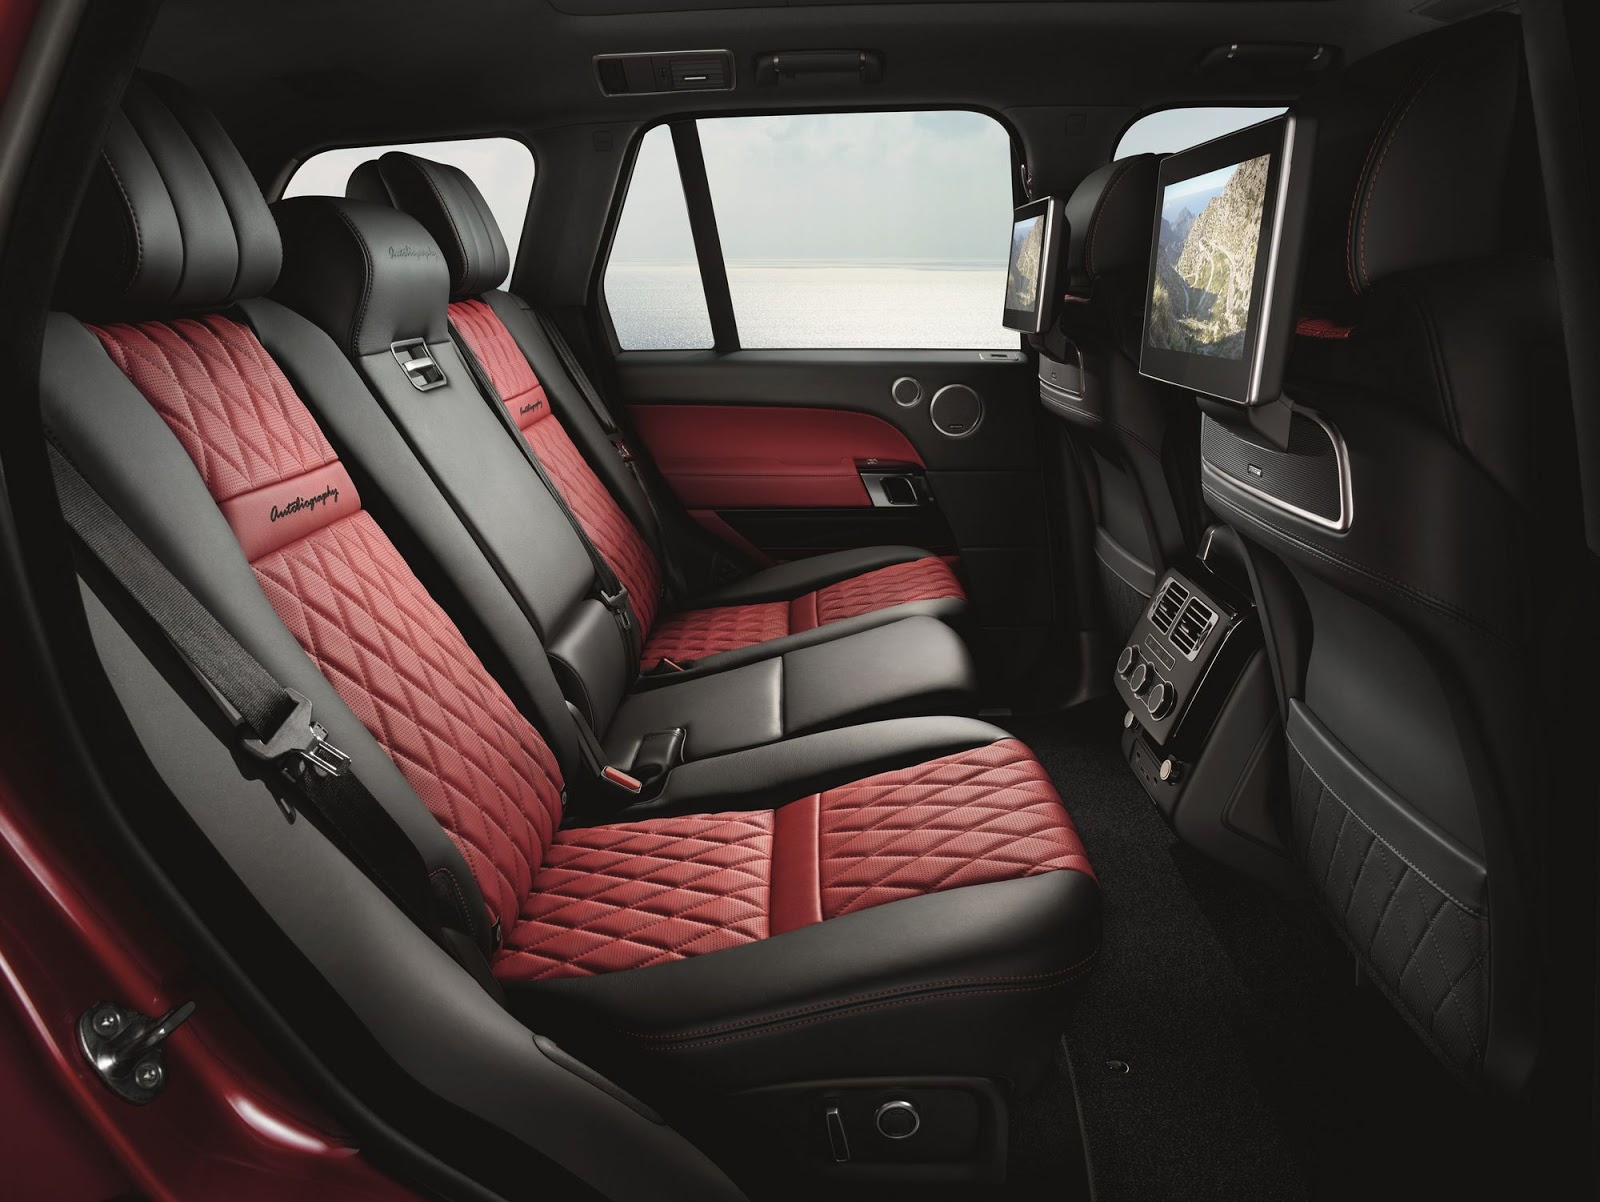 2017 Range Rover To Receive A New Sv Autobiography Dynamic Trim And Tech Updates